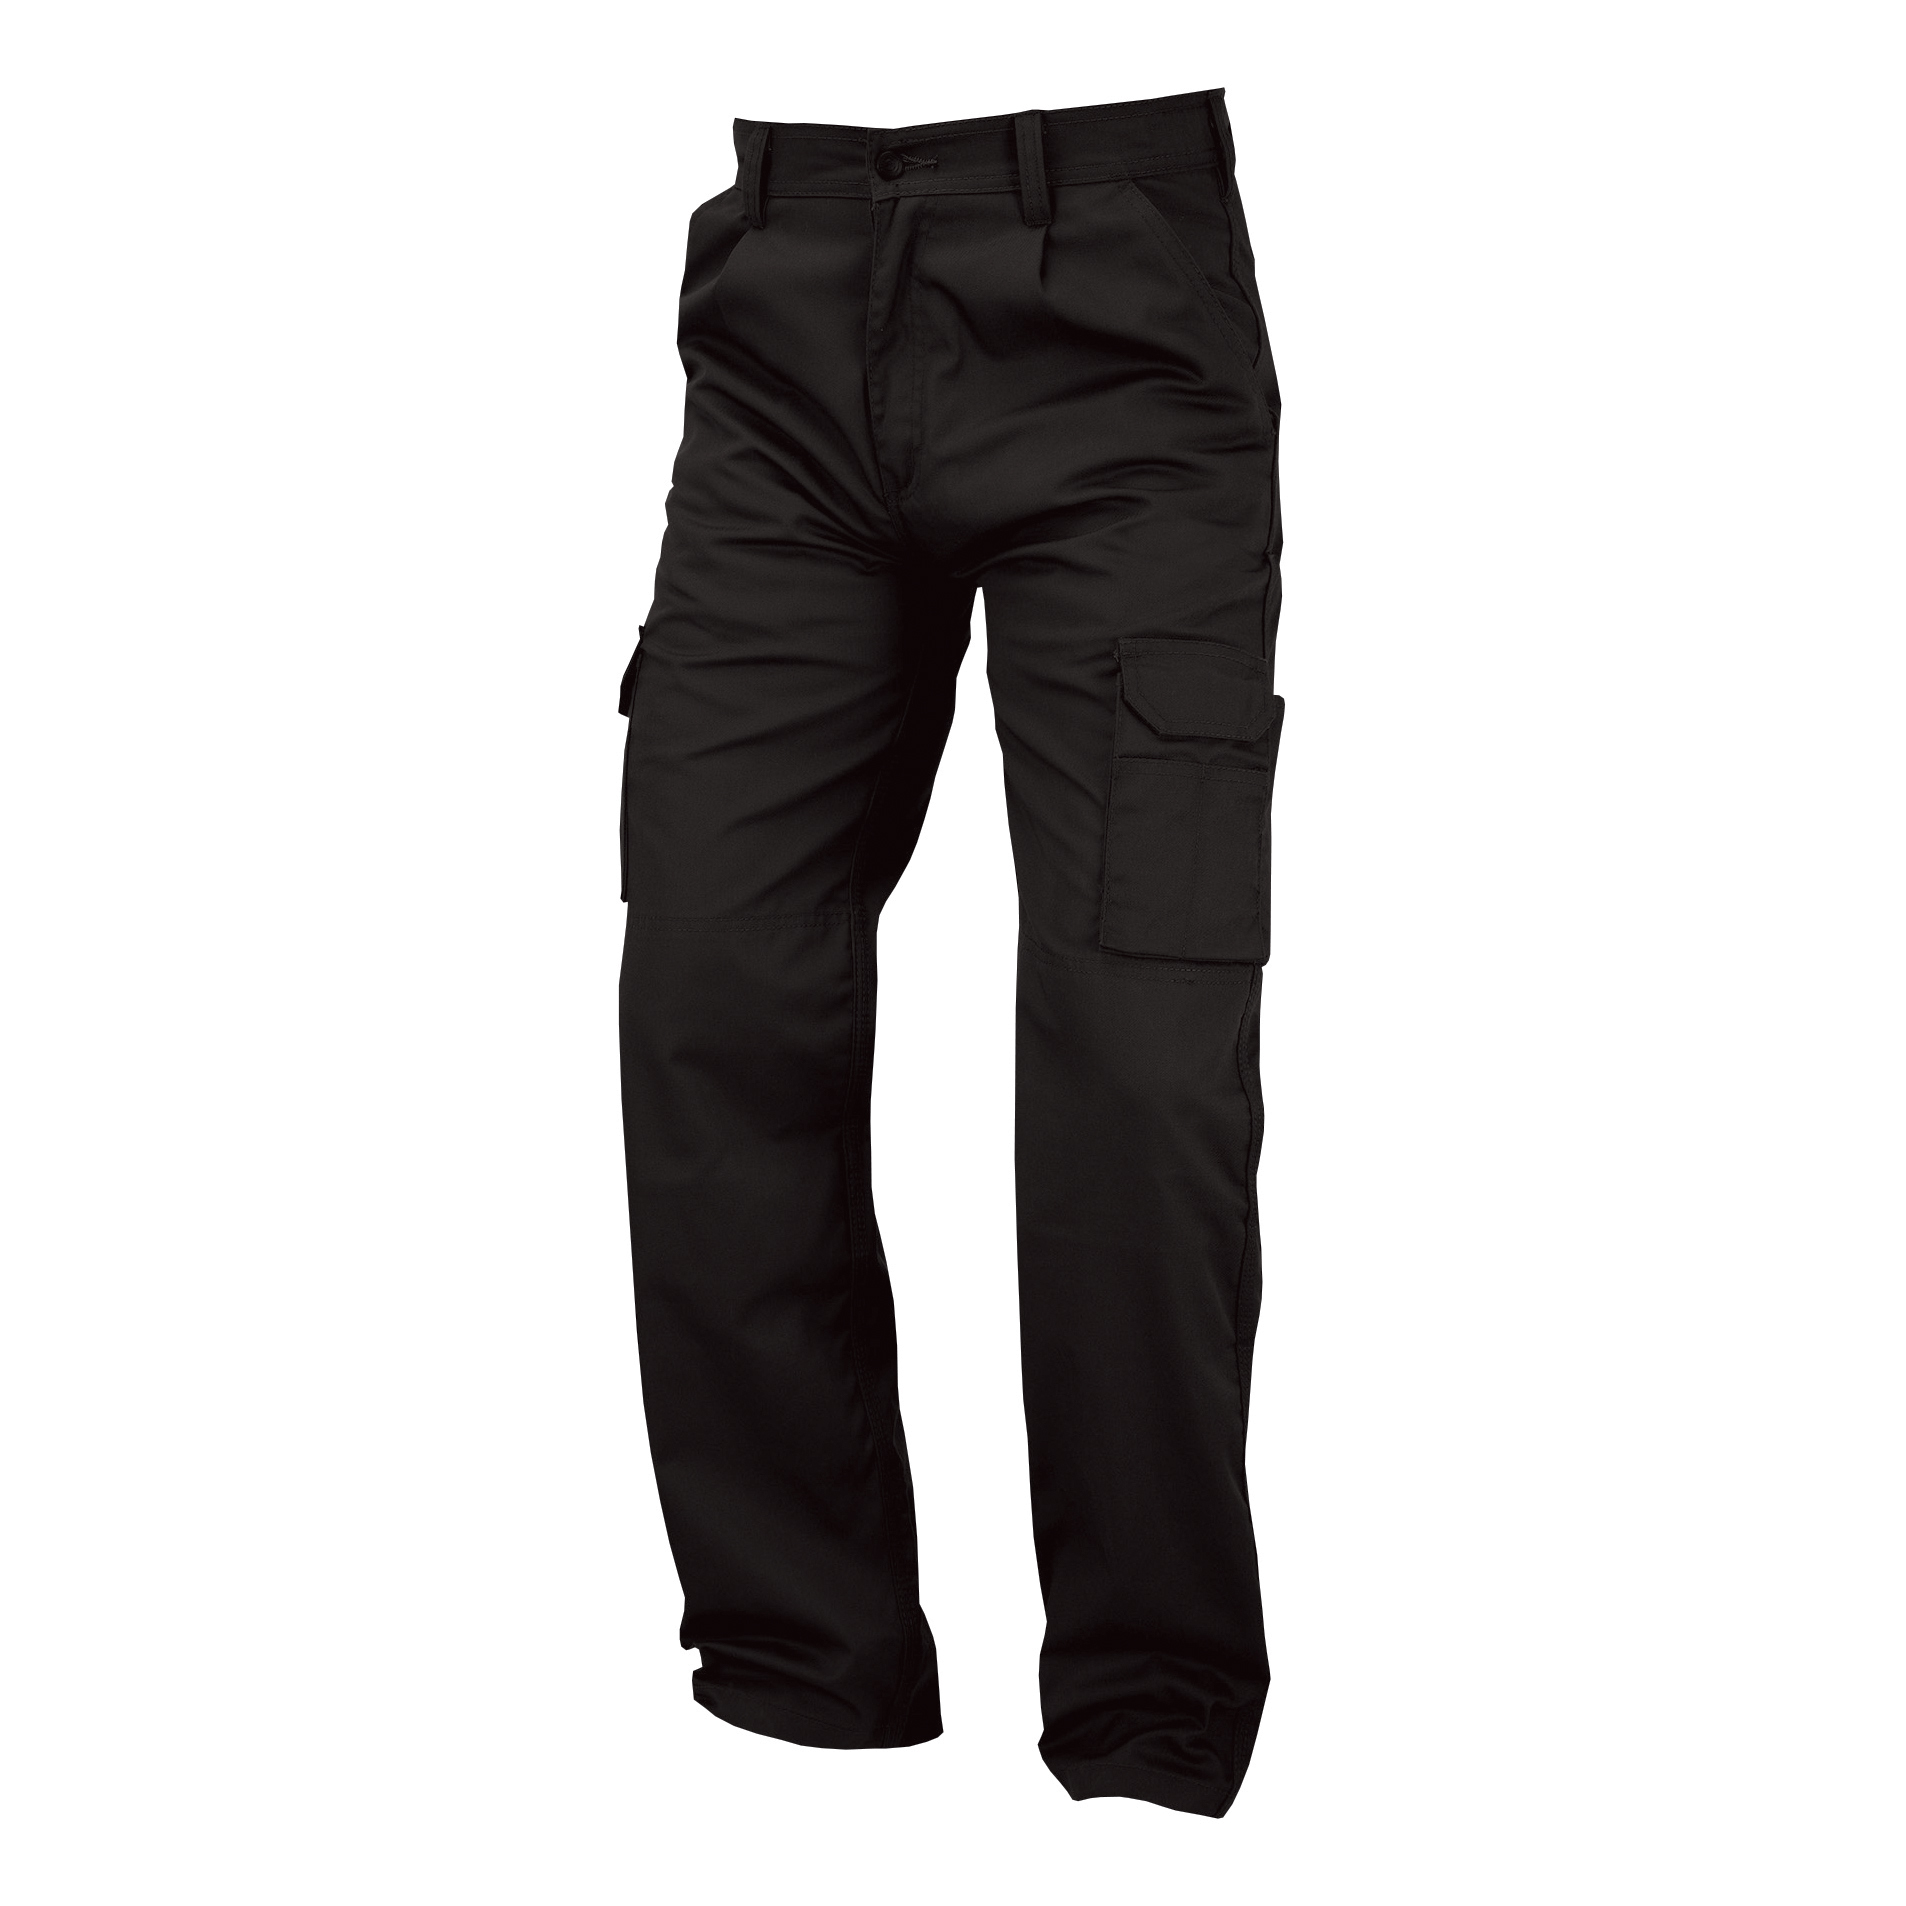 Business Kneepad Combat Trouser Multi-functional Waist 28in Leg 29in Black